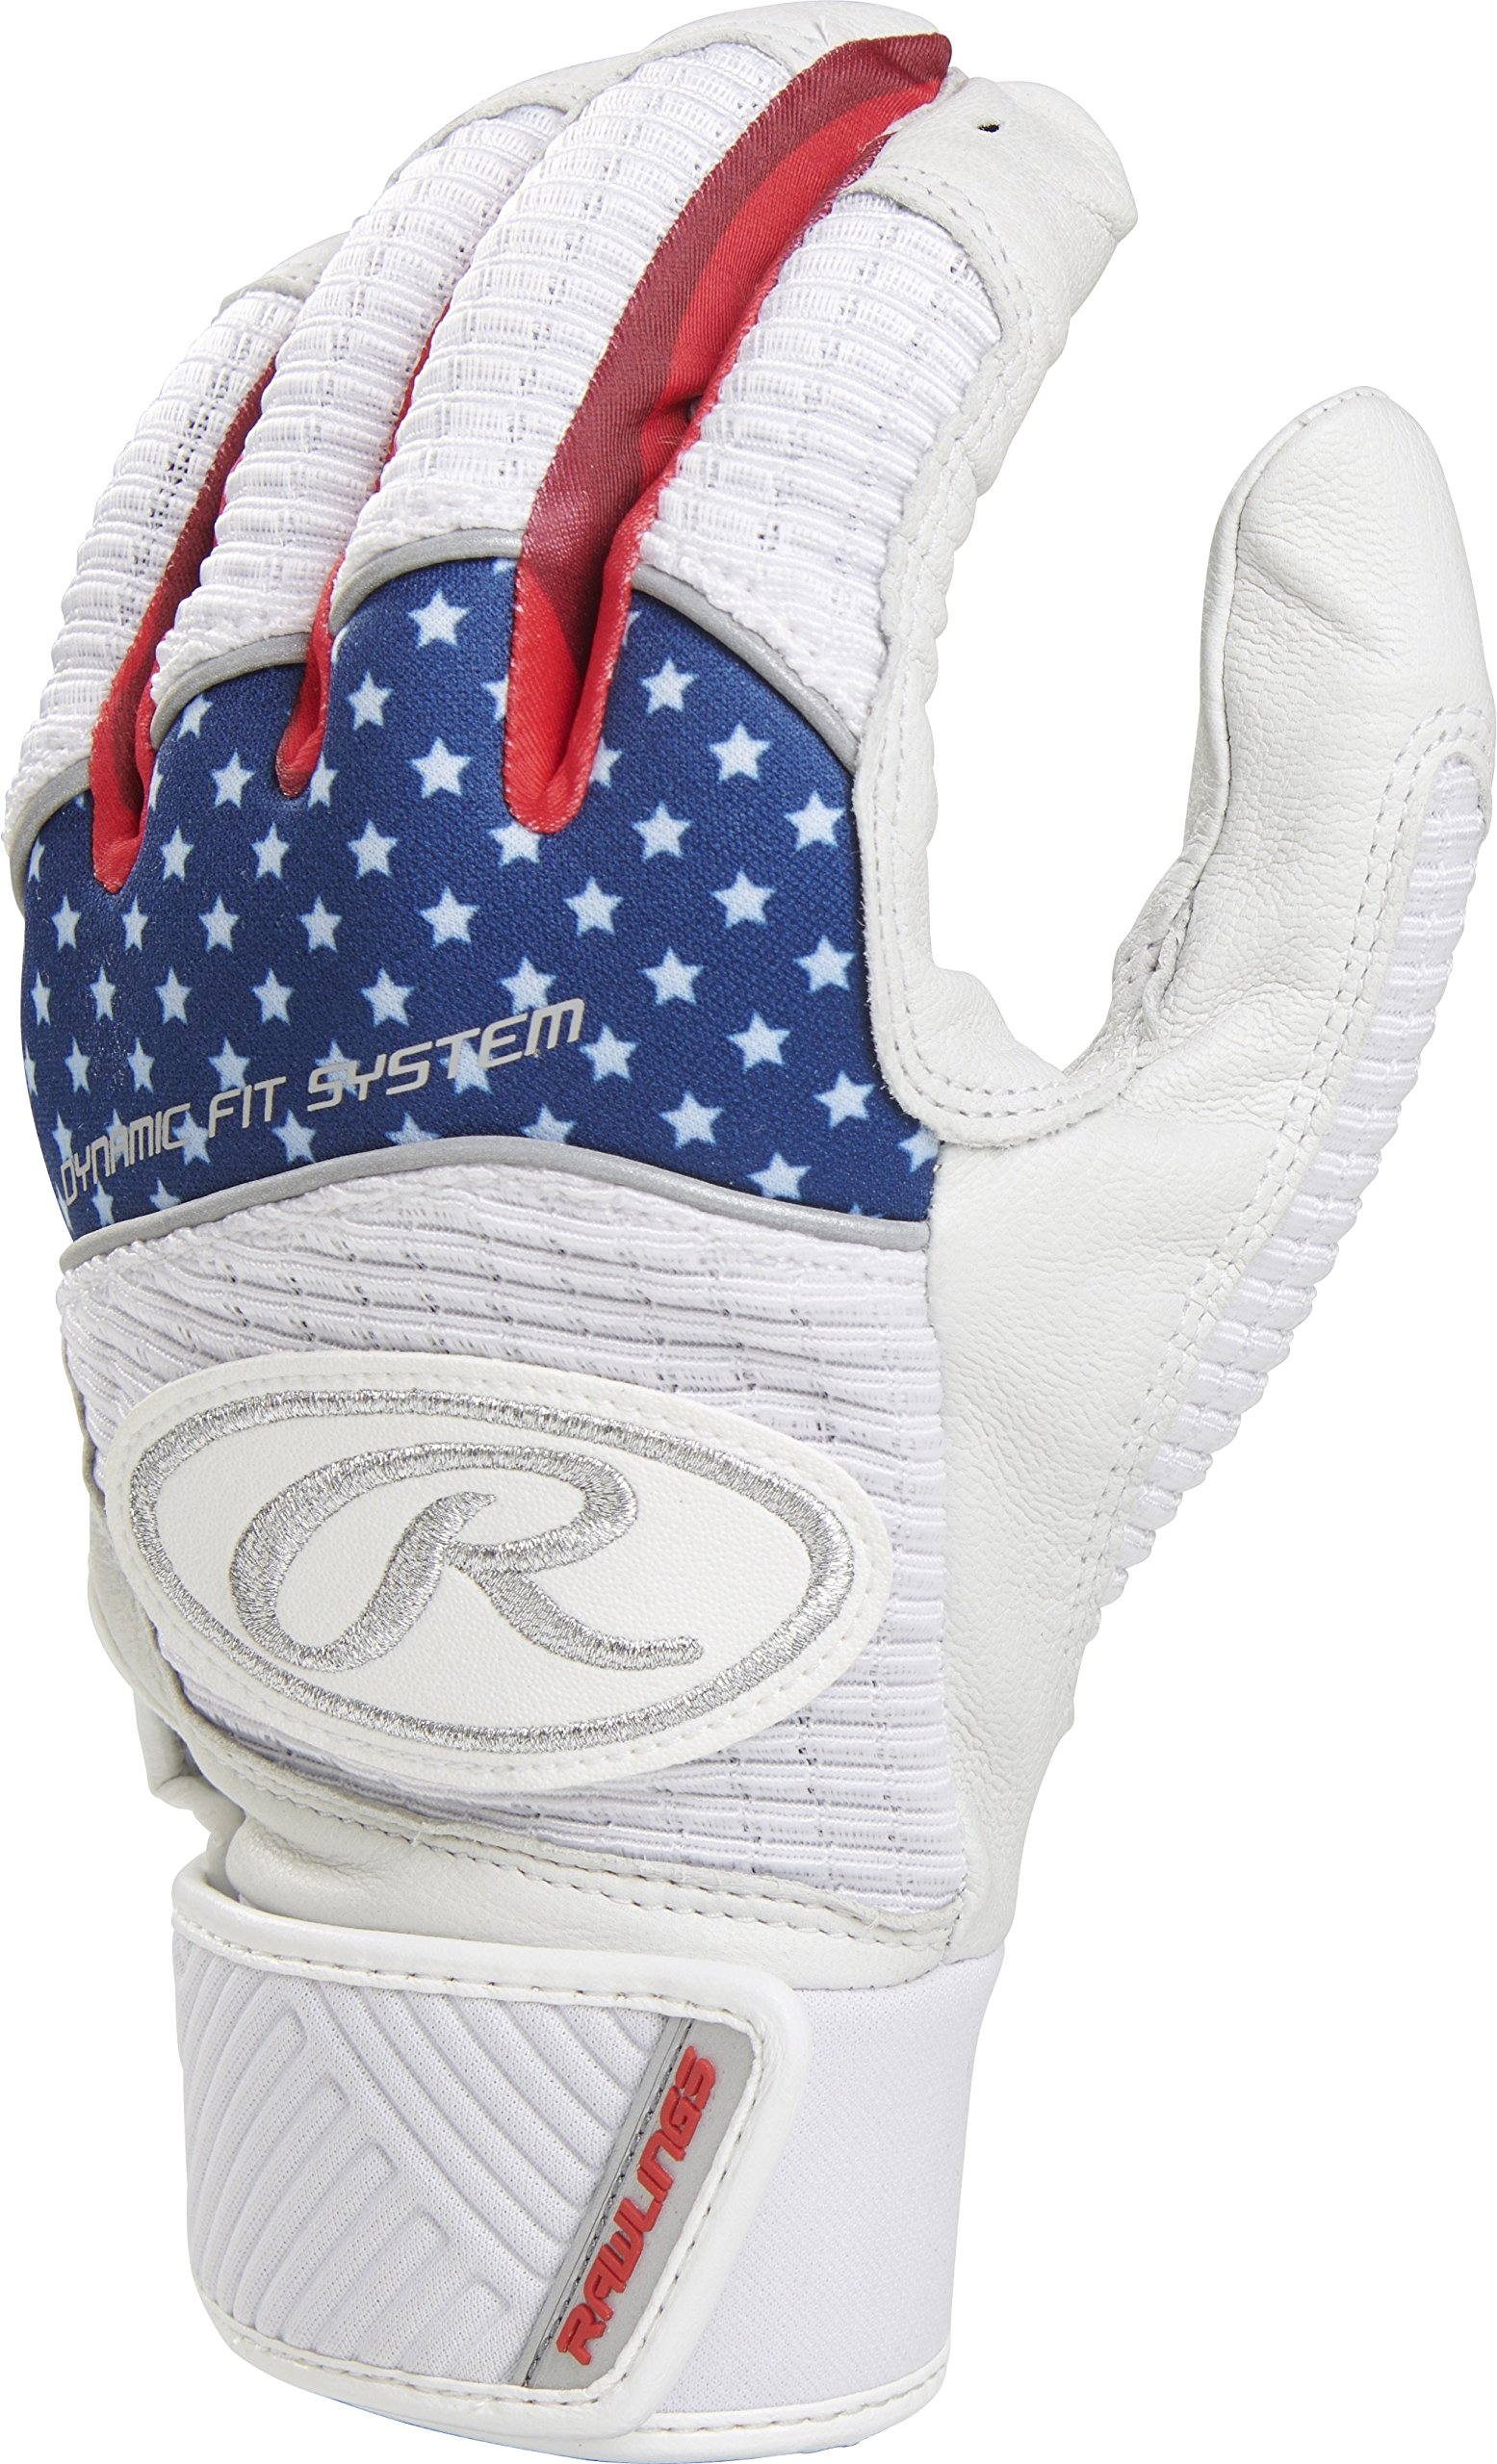 Rawlings WH950BGY-USA-88 Workhorse Batting Gloves, Red/White/Blue